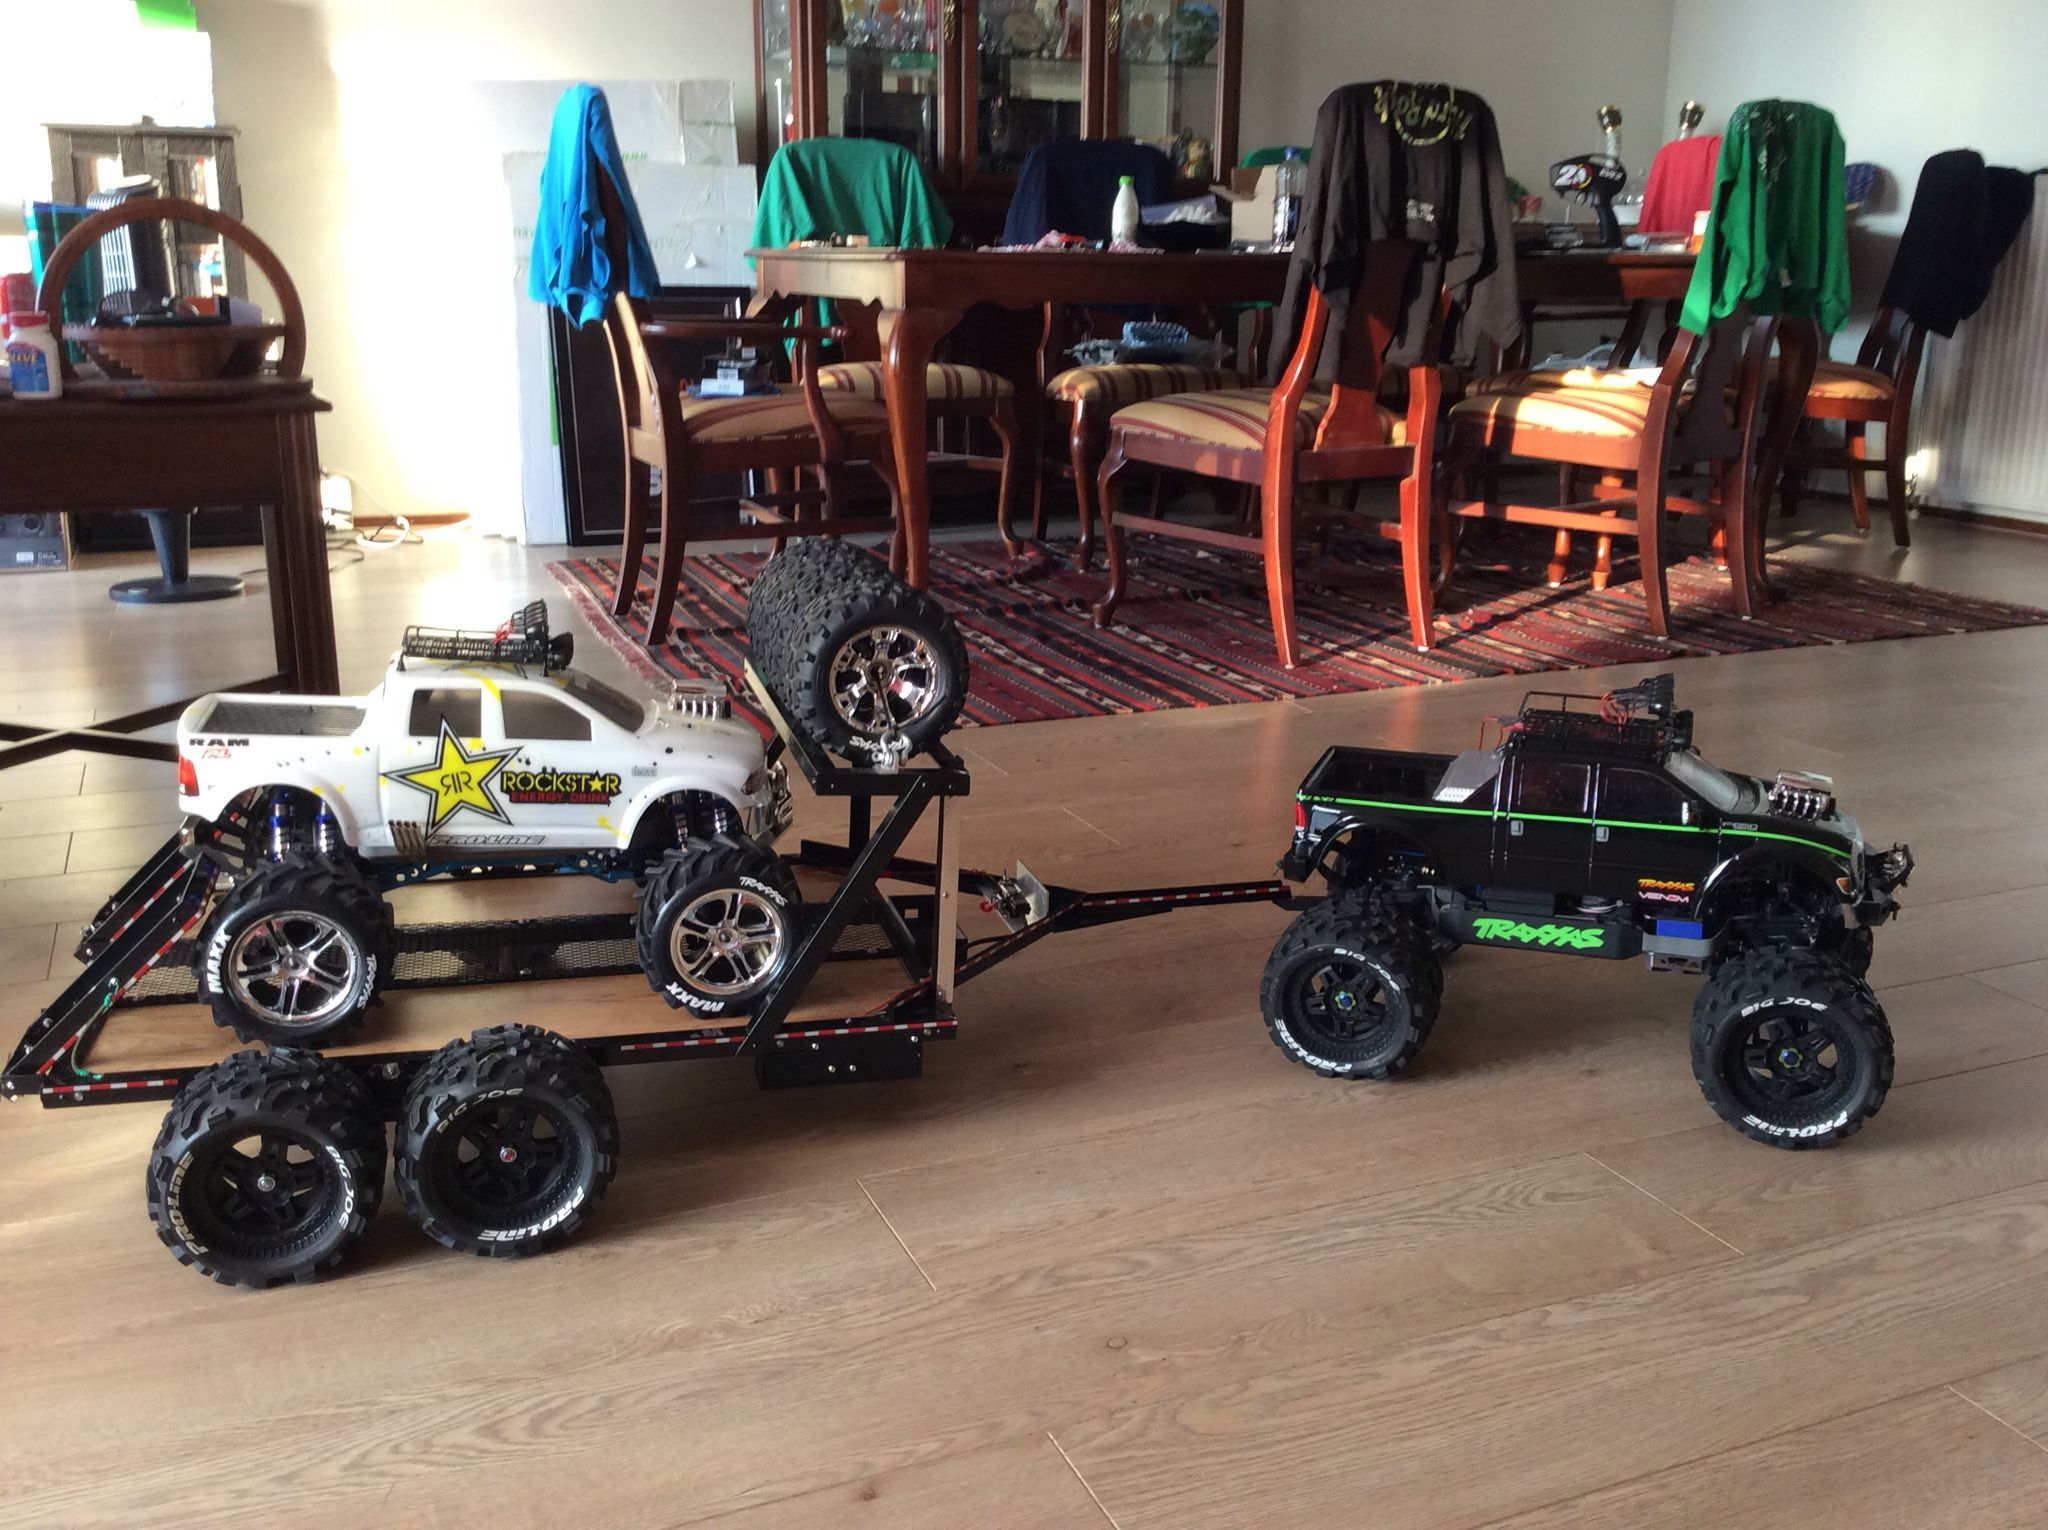 petitions fered To Radio Control Car Enthusiasts